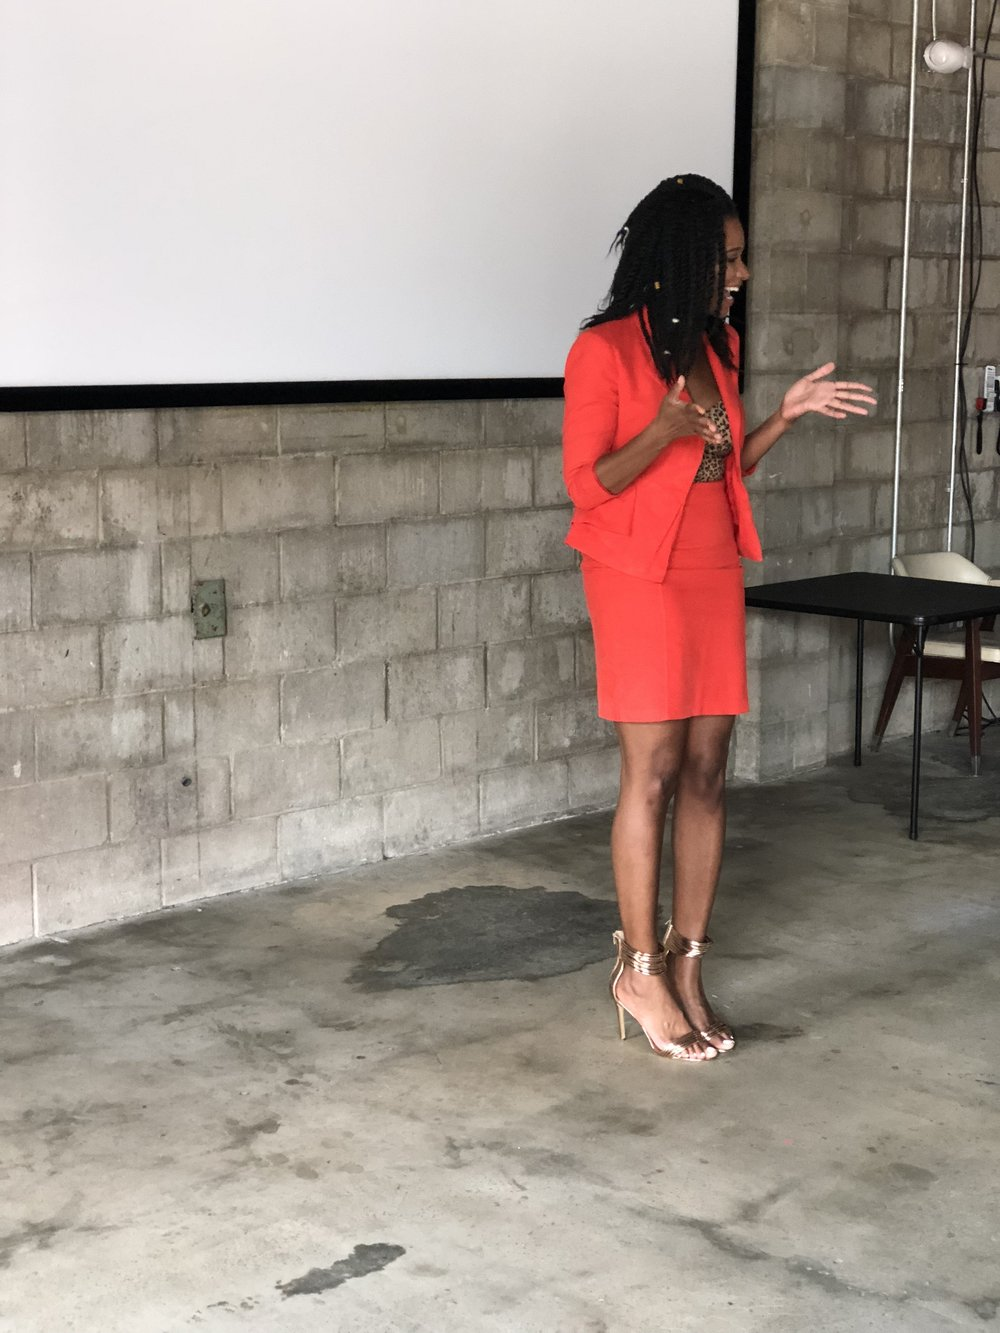 Keynote Speaker, Panelist, Moderator - I lead engaging learning experiences for audiences on topics including corporate and civic leadership and professional development.